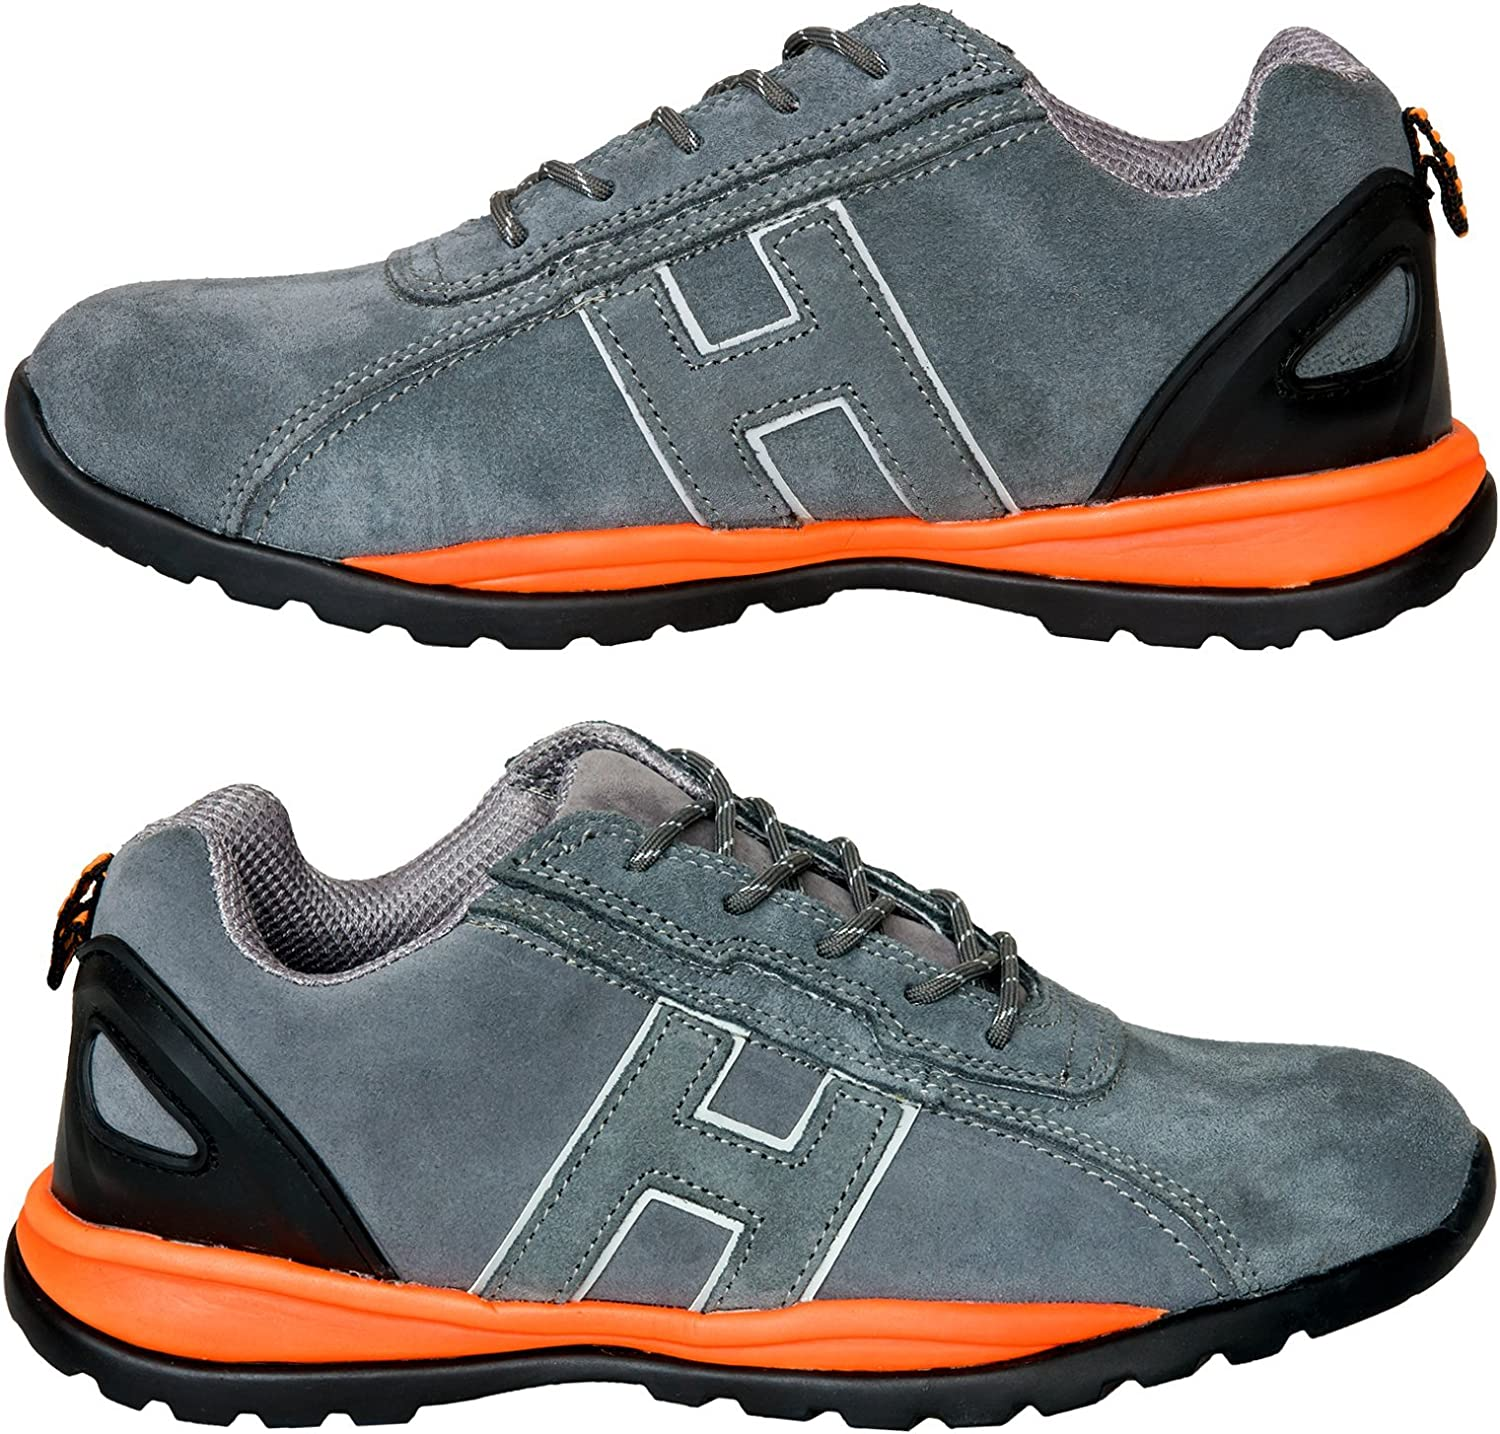 Reis work shoes, safety shoes